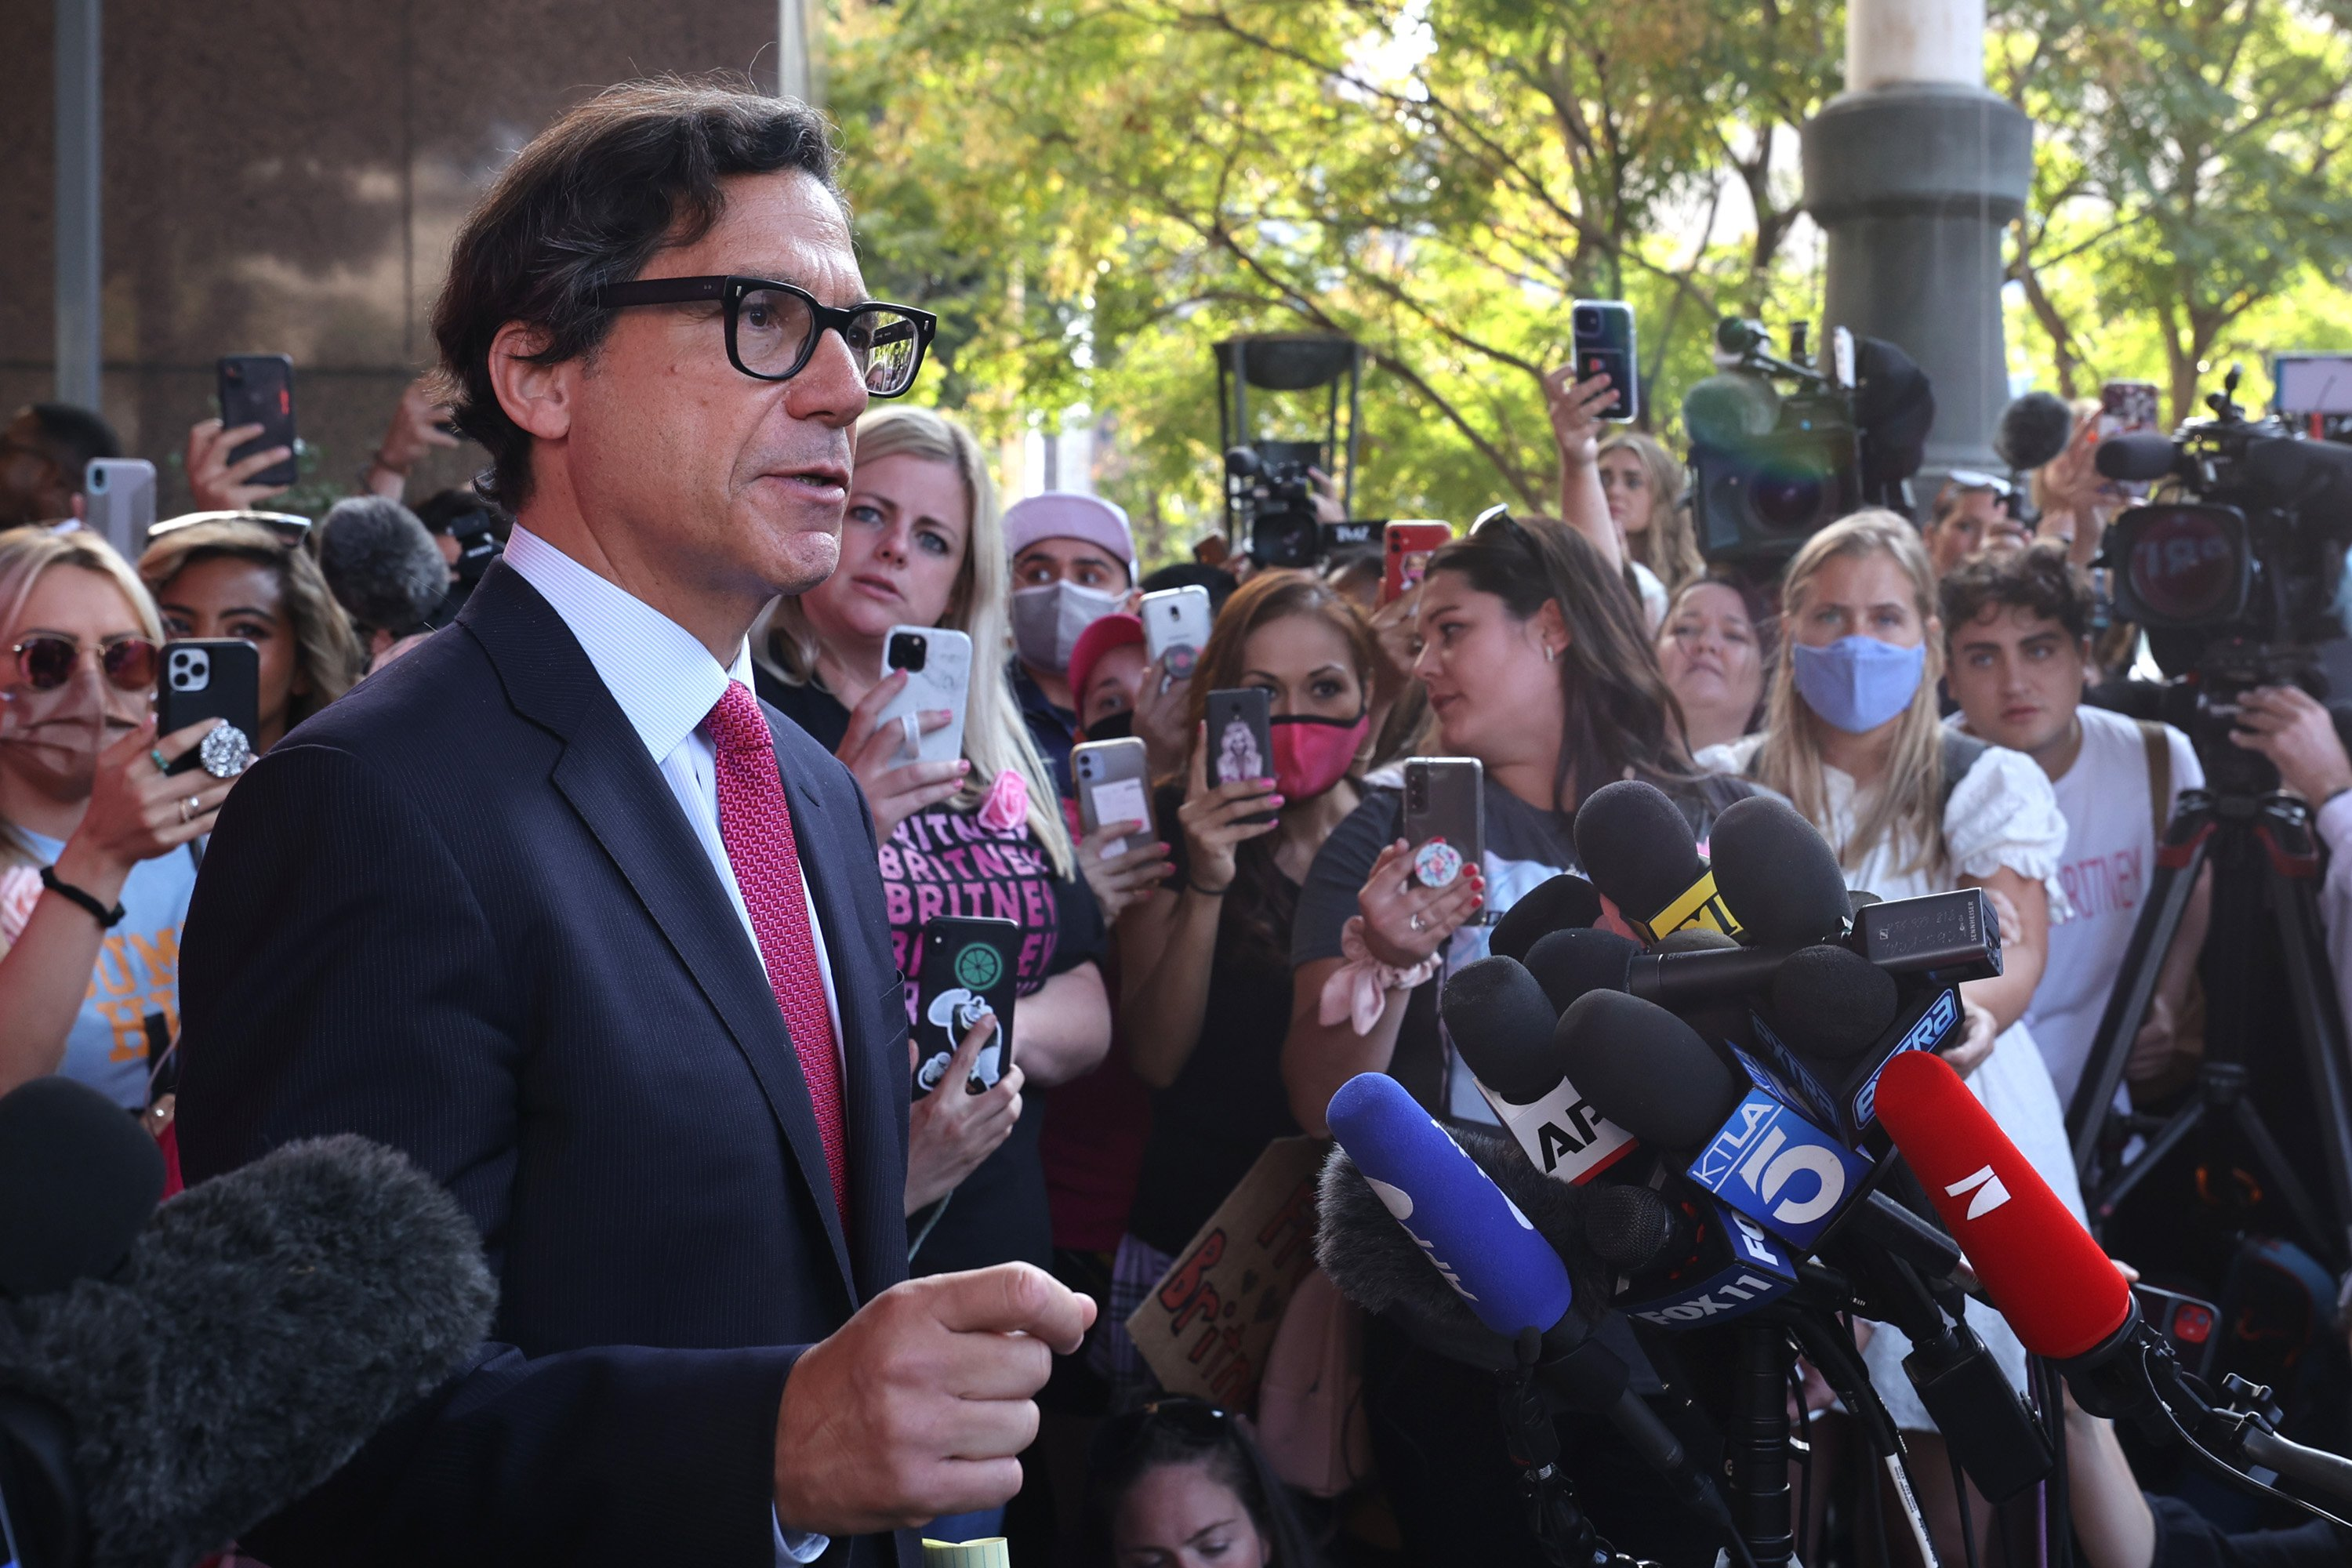 Britney Spears' attorney Mathew Rosengart speaking to the press at the Stanley Mosk Courthouse in Los Angeles, California | Photo: Getty Images